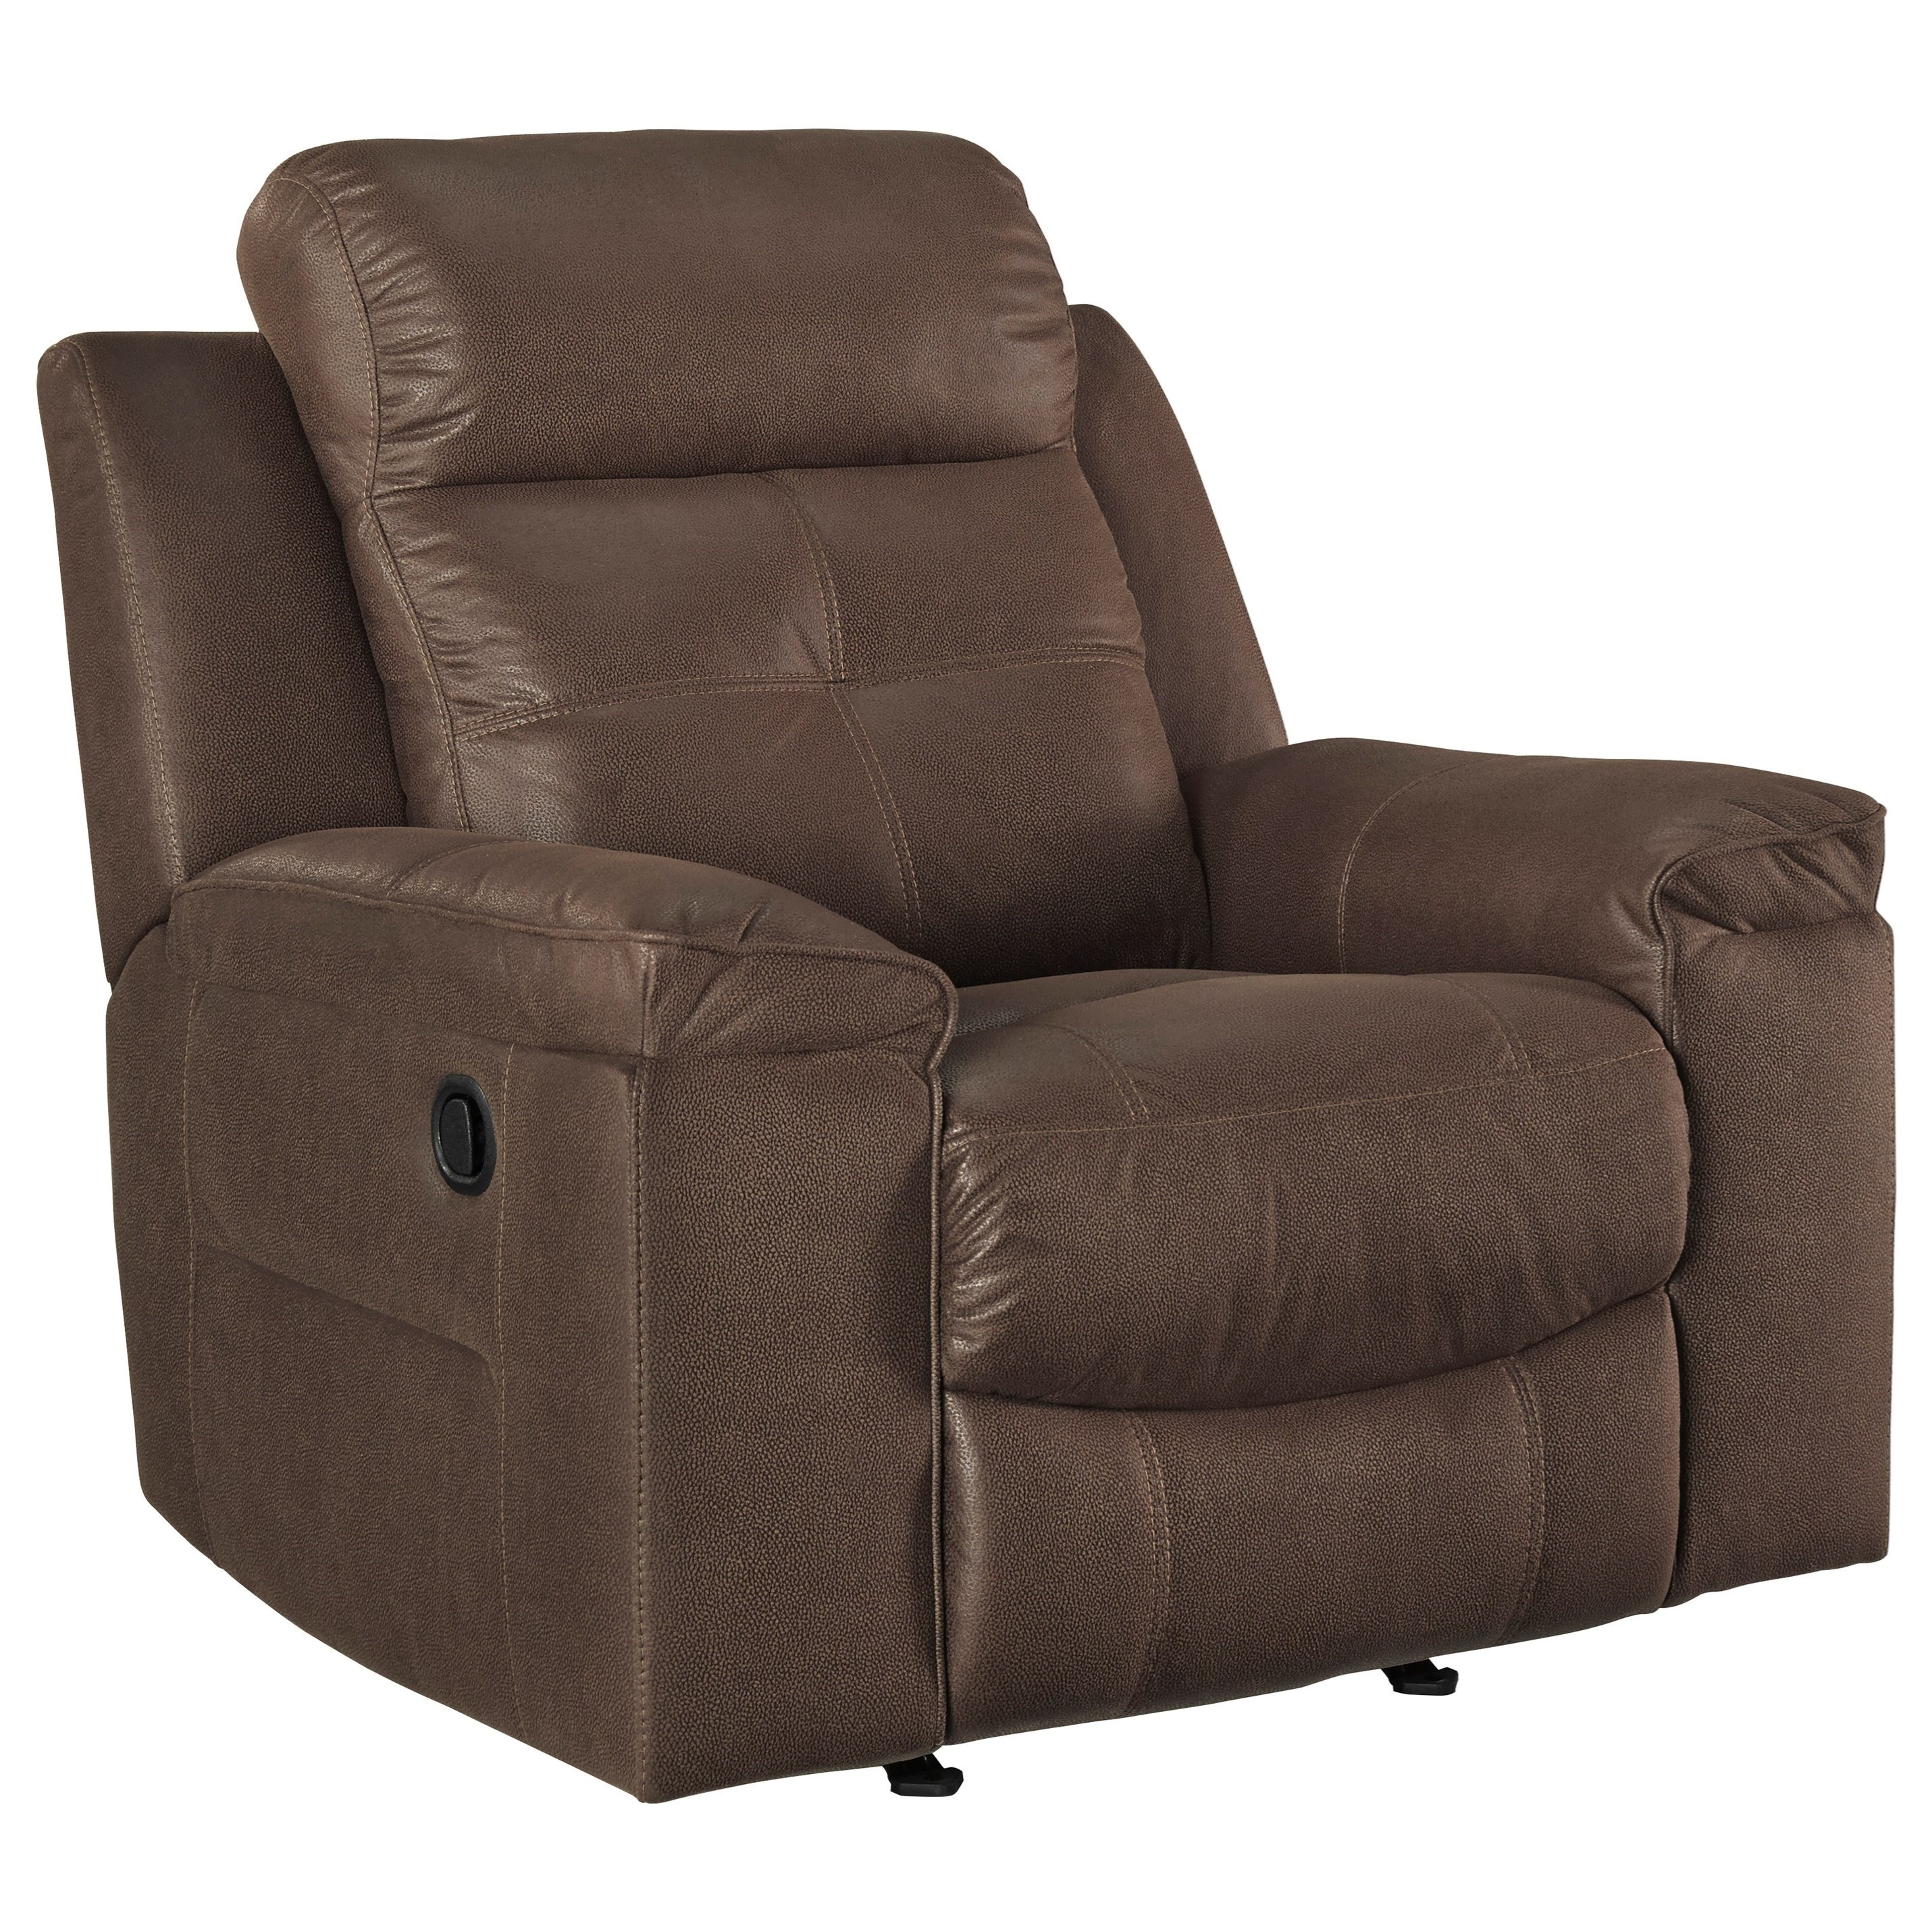 Jesolo Rocker Recliner by Signature Design by Ashley at Lapeer Furniture & Mattress Center